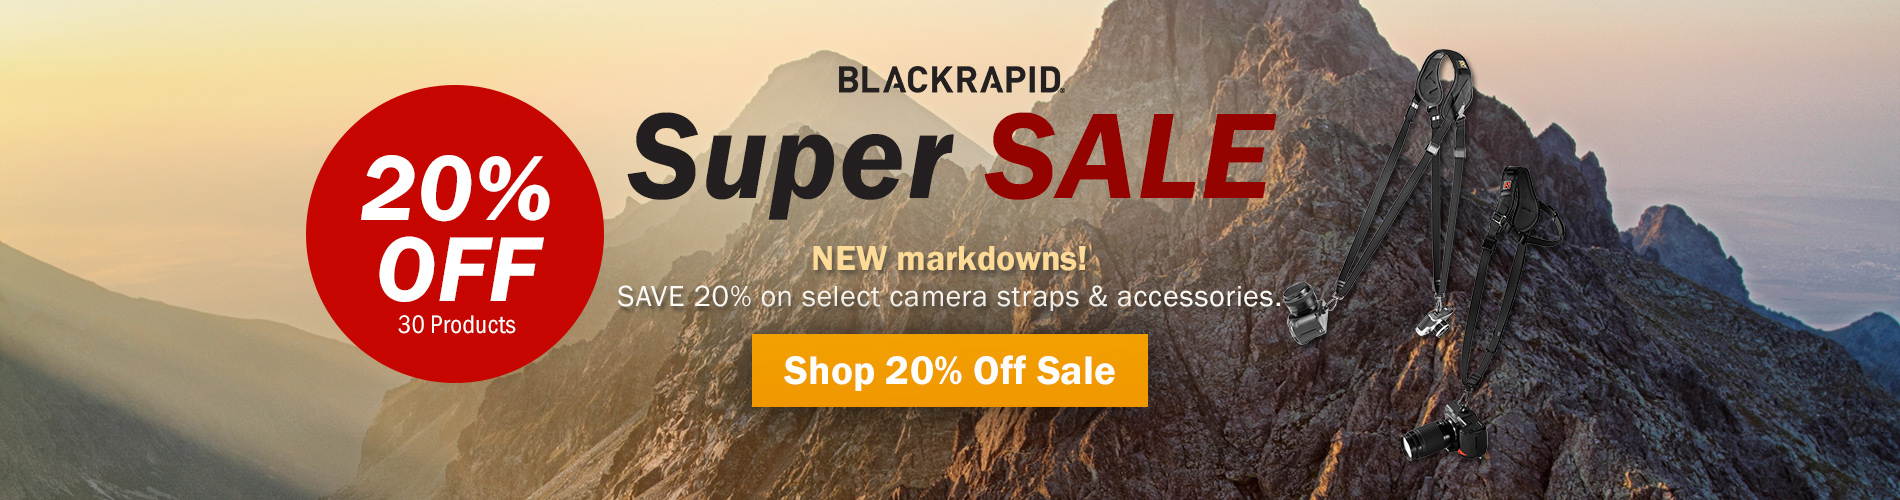 BlackRapid Super Sale - New Markdowns! Save 20% on select camera straps and accessories. Shop 20% Off Sale >>